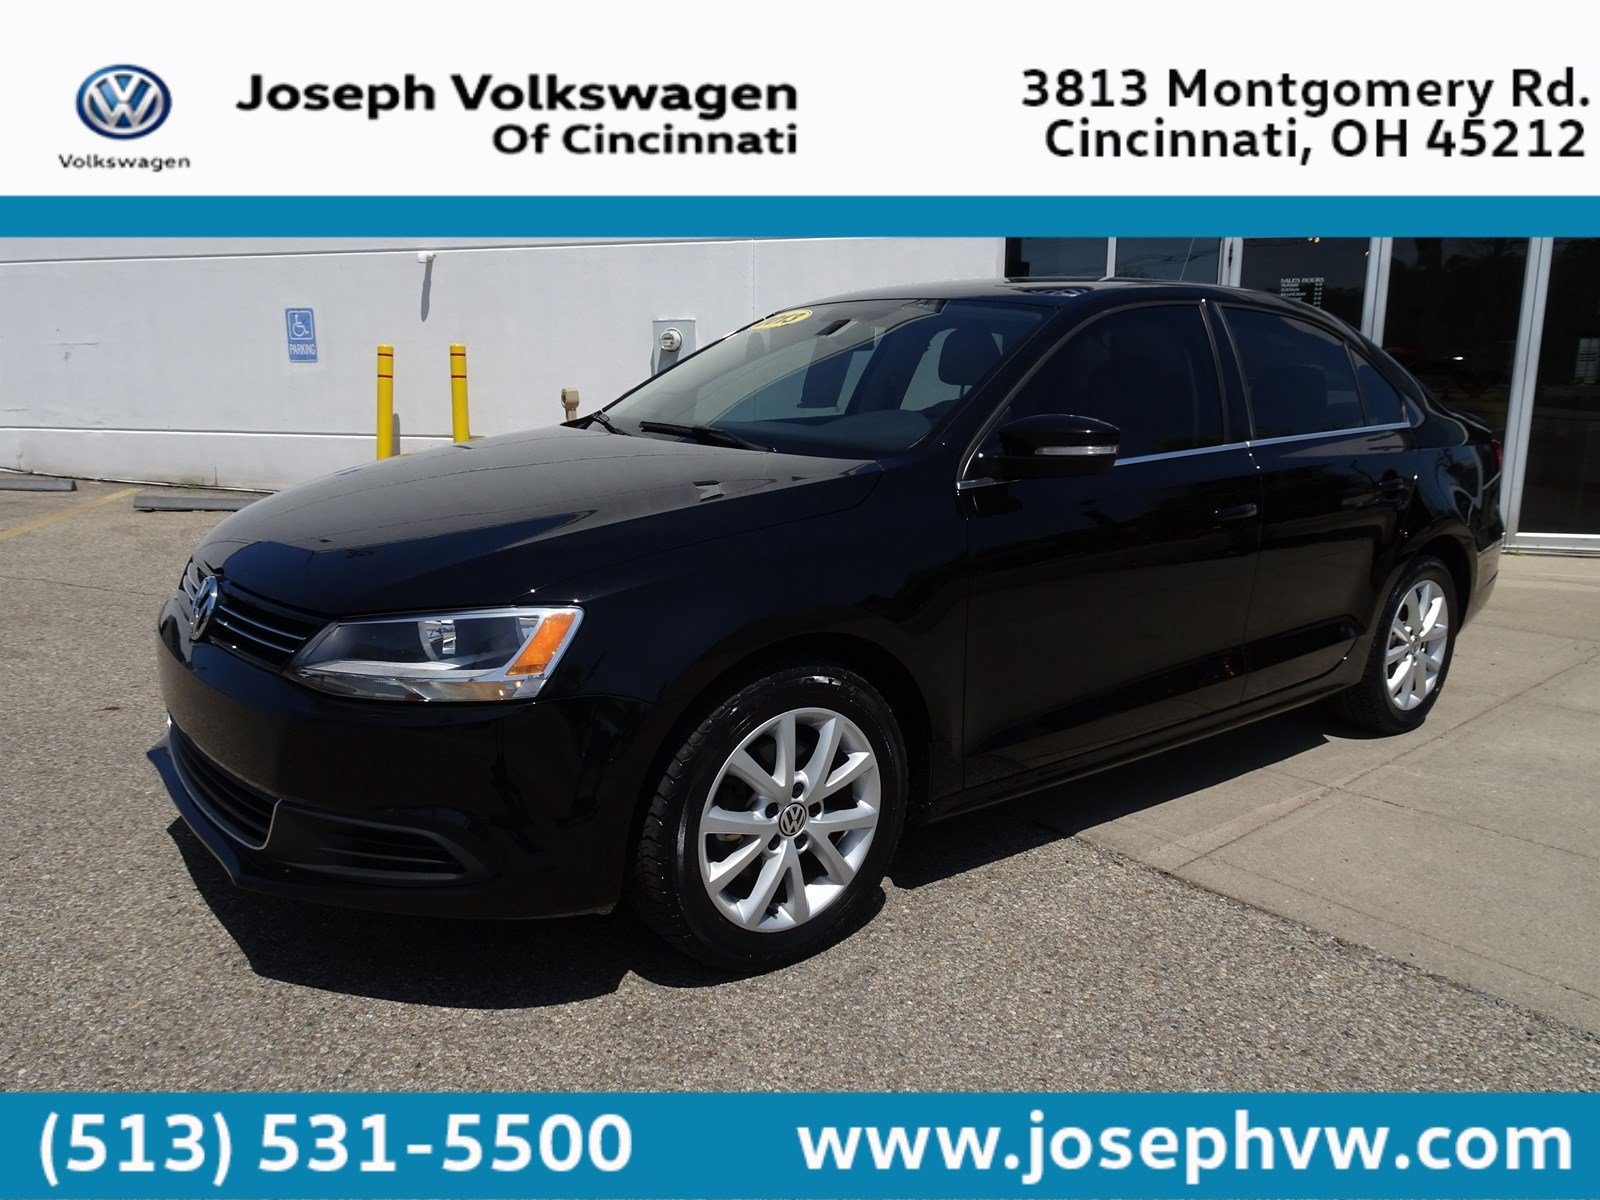 Pre-Owned 2013 Volkswagen Jetta Sedan SE w/Convenience